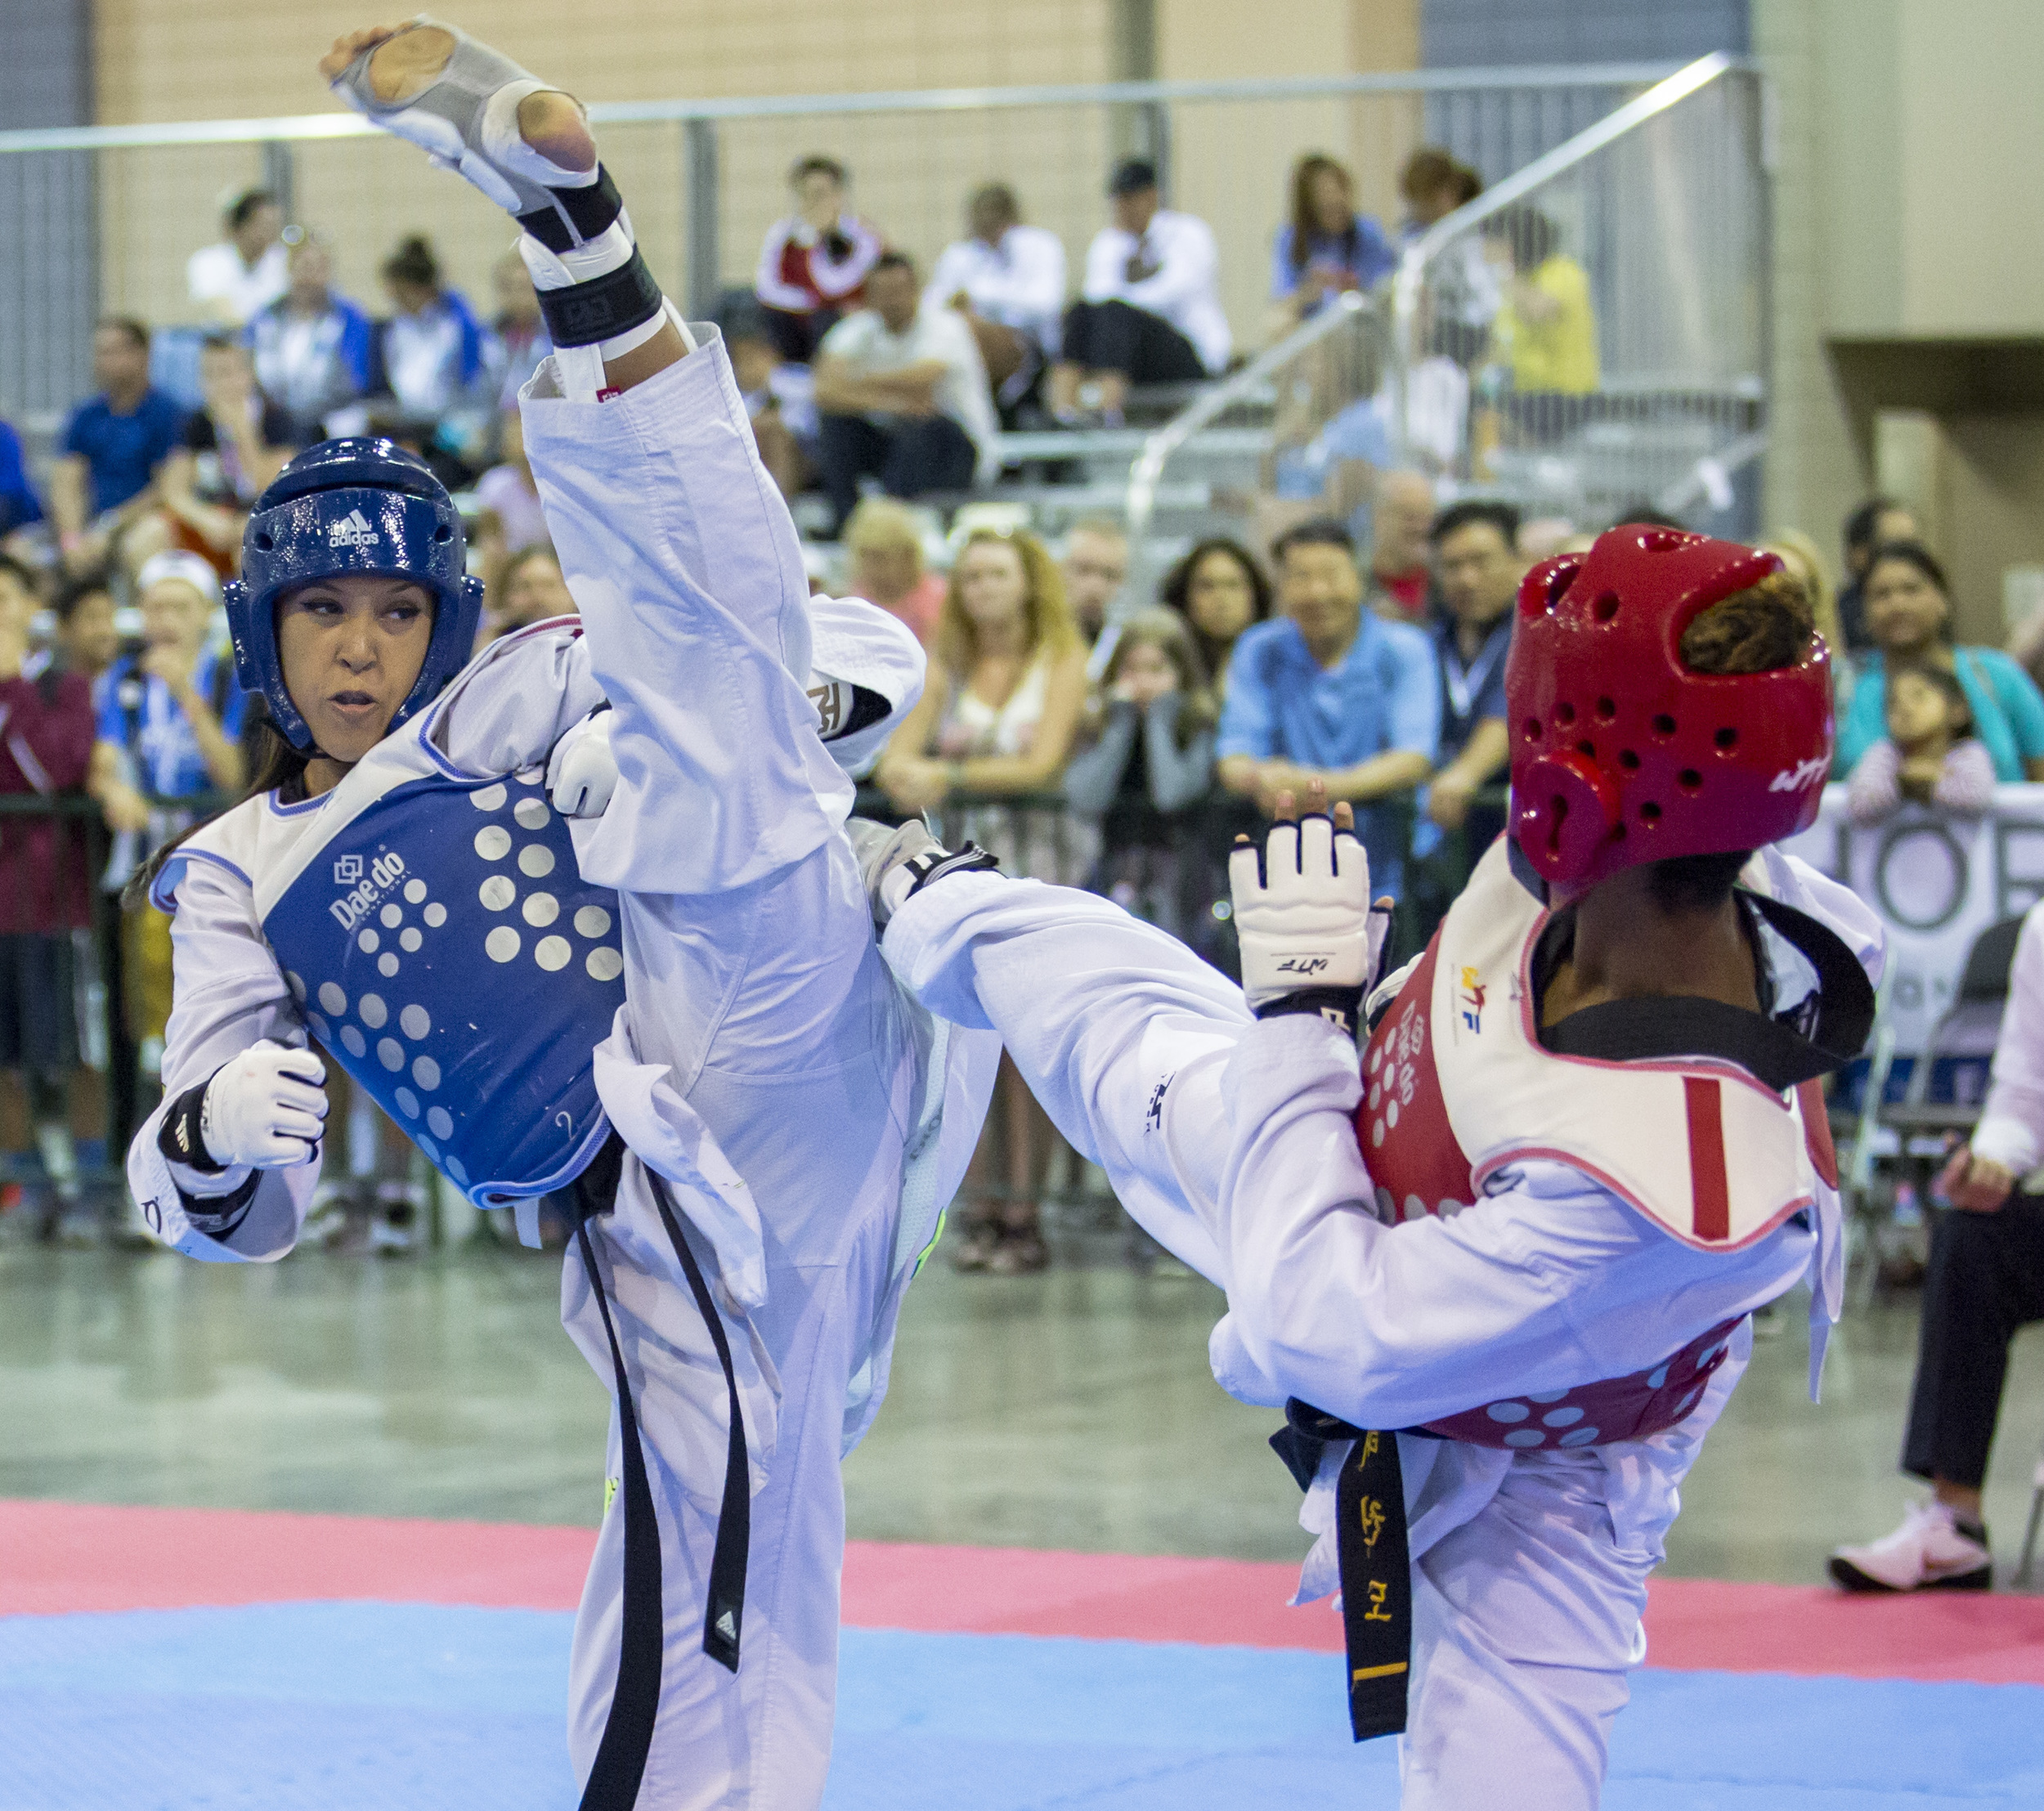 Cassie Tubbs extends for a high kick in her bout against Starla Santana during the USA Taekwondo National Championships held at the Greater Richmond Convention Center on Sunday, July 10, 2016.